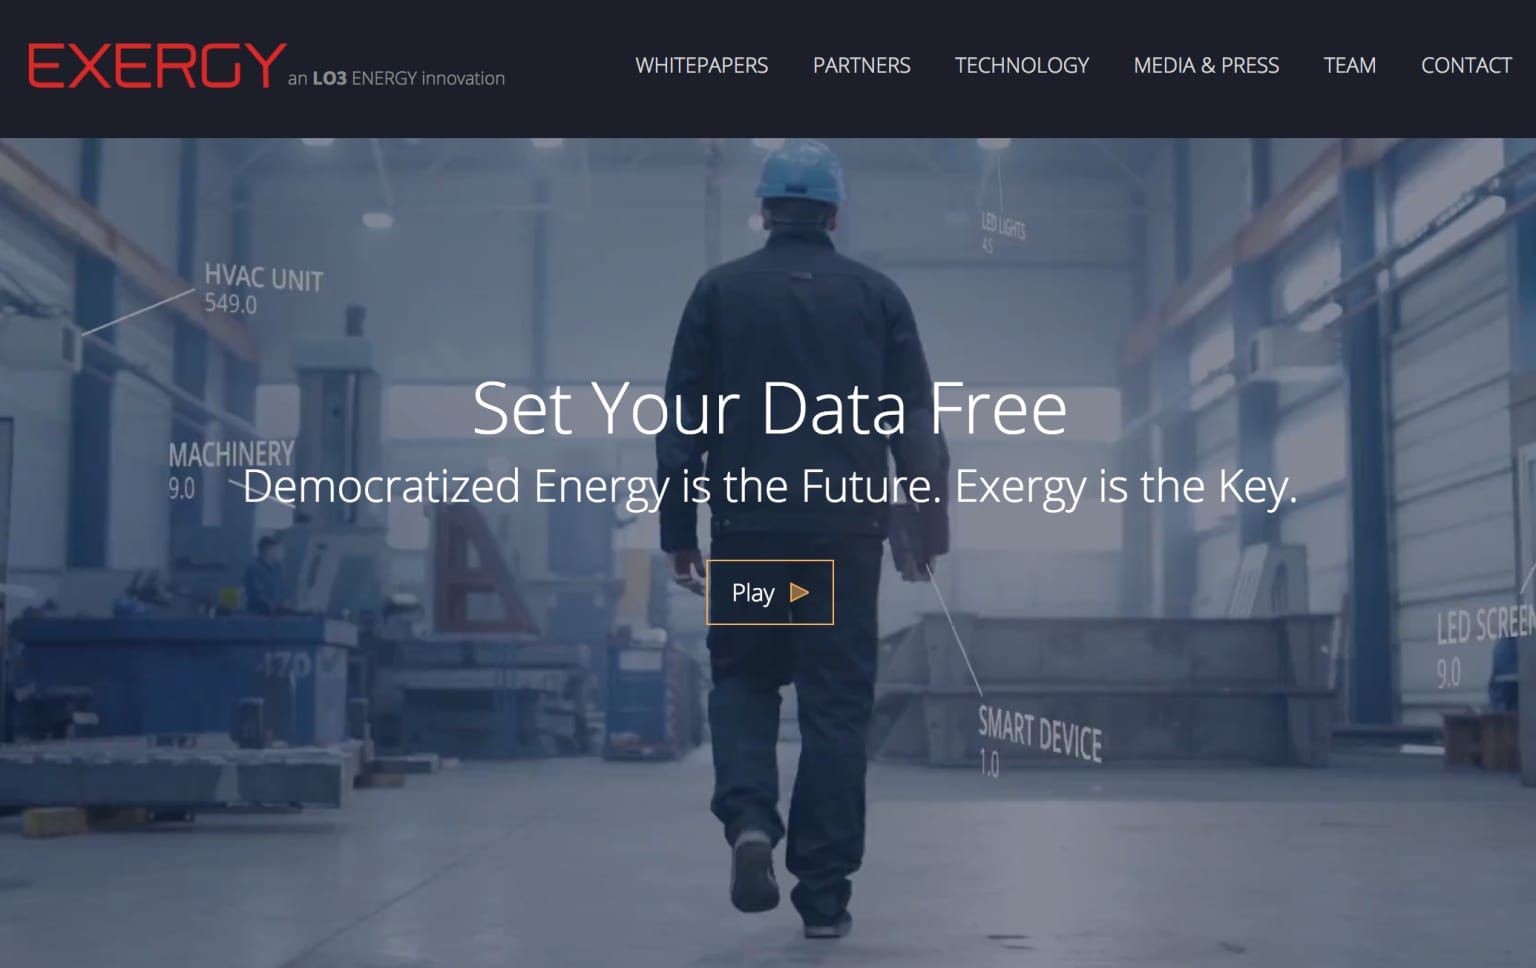 Brand Messaging and Advertising for Green Energy/Tech Startup